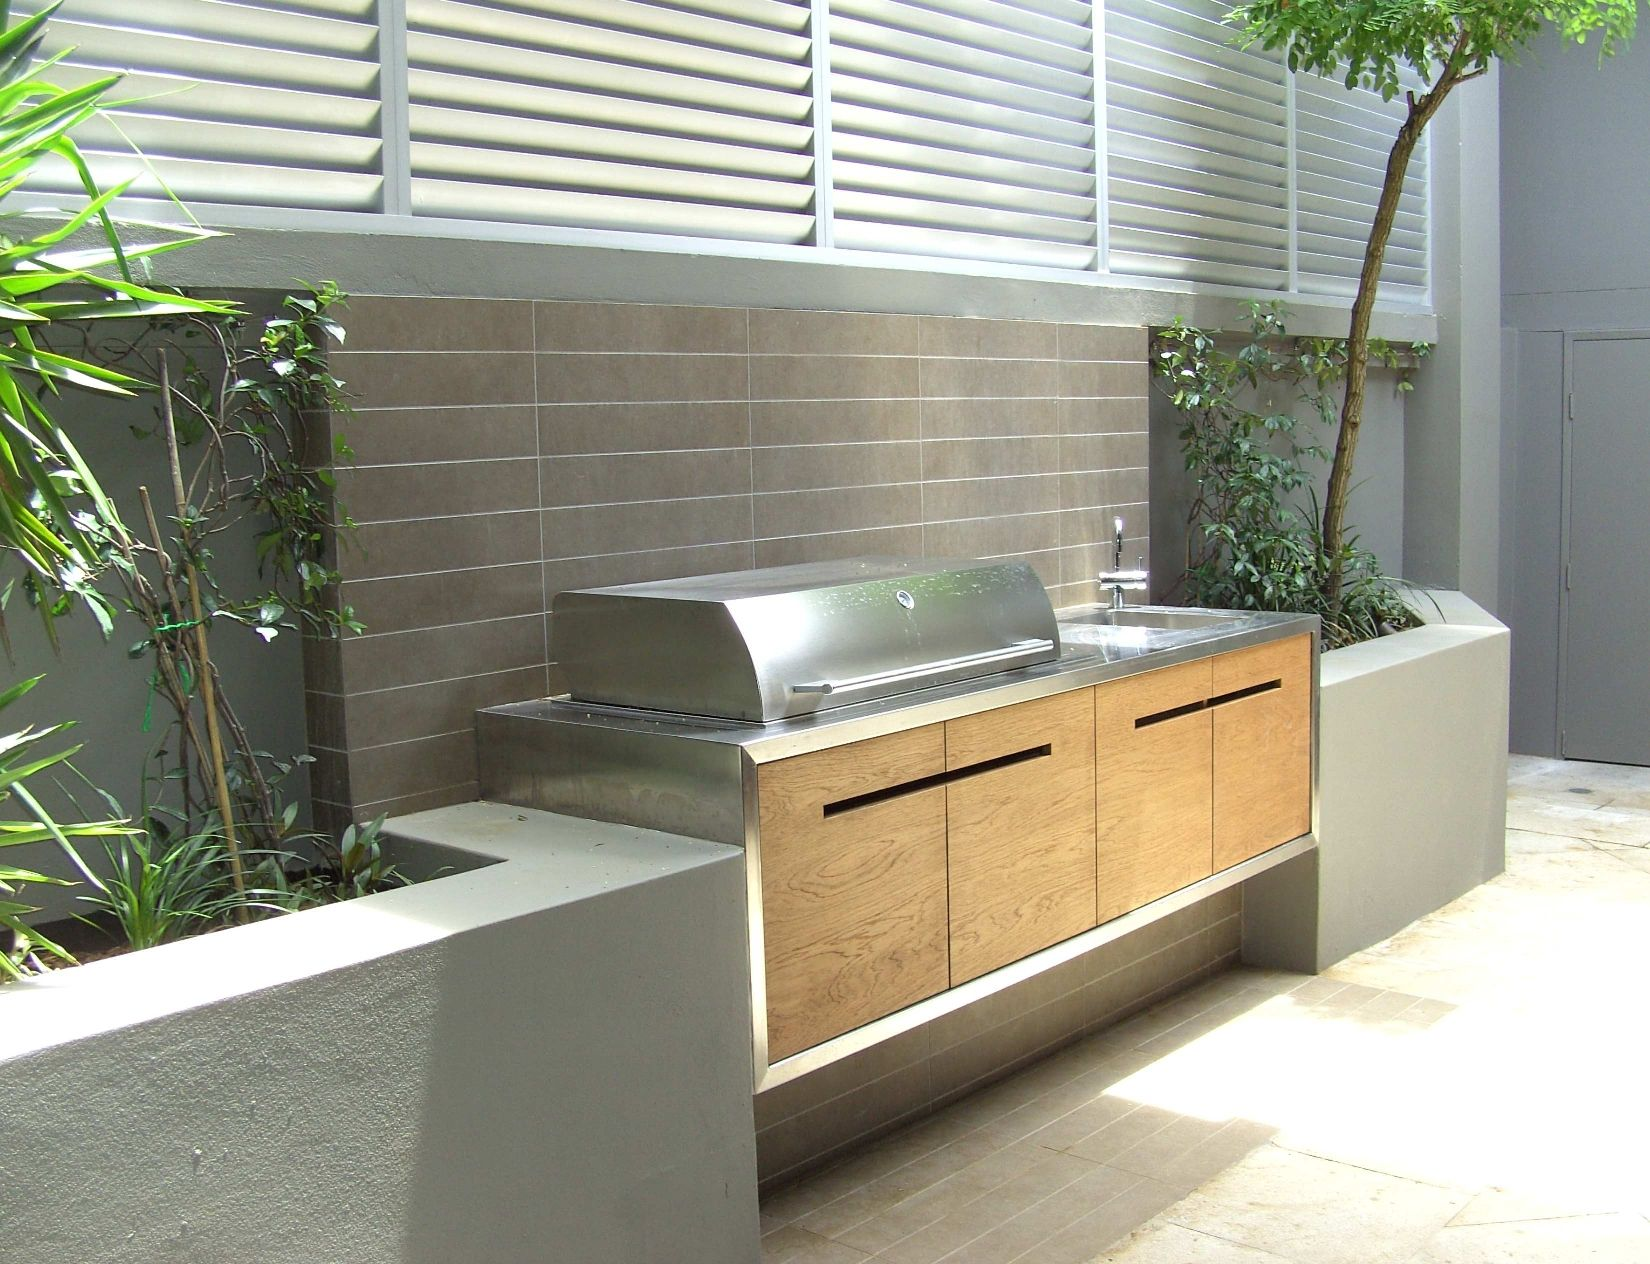 Benchtops Sydney Stainless Steel Benchtops And Benches Sheet Metal